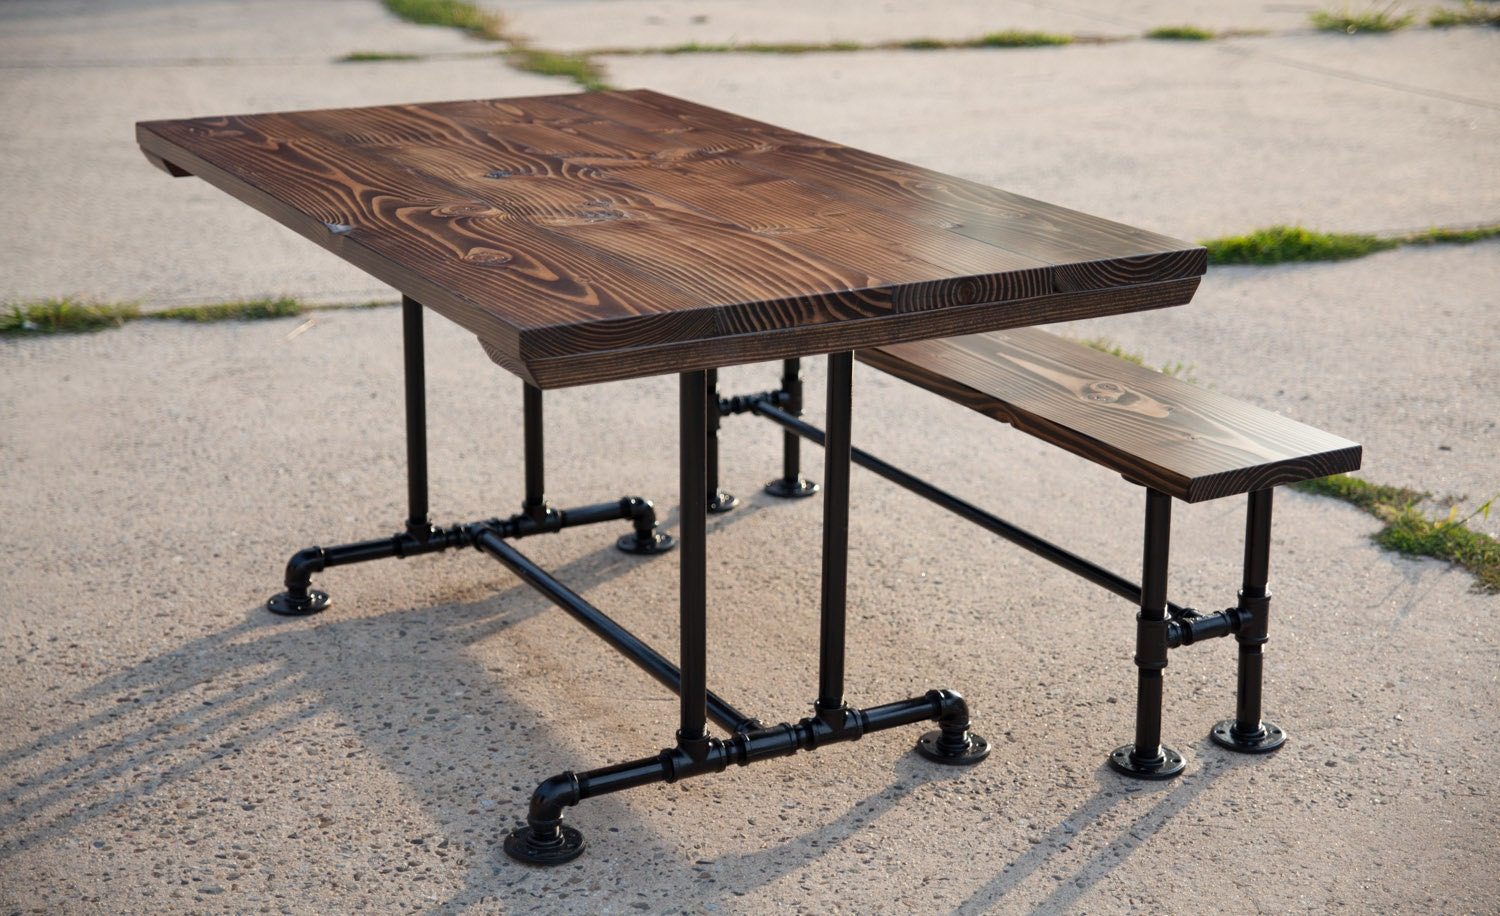 5ft Industrial Style Farmhouse Table Farmhouse Dining Table : ilfullxfull650804036rw2h from www.etsy.com size 1500 x 916 jpeg 335kB